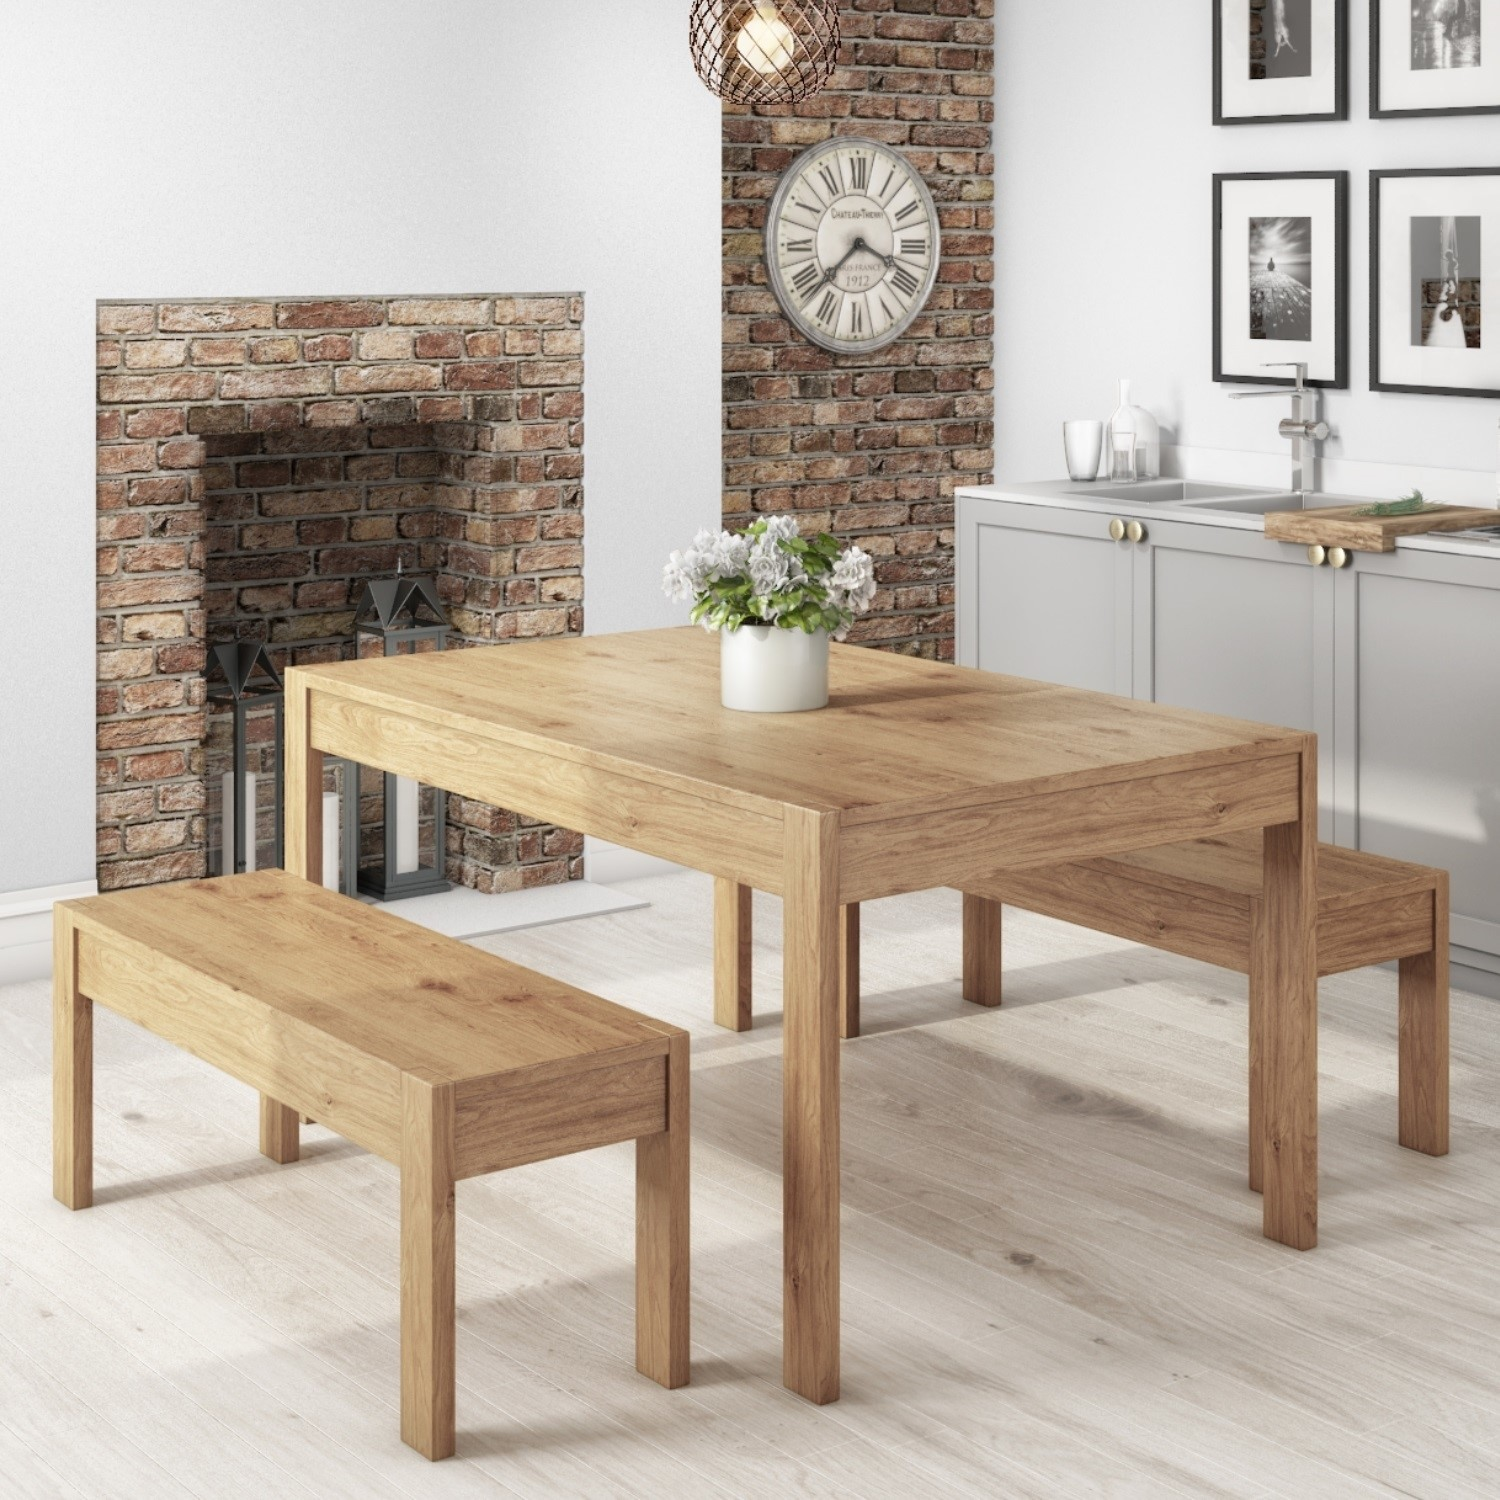 Details about Emerson Solid Pine Kitchen Dining Table Set - Includes 2  Solid Pine Benches